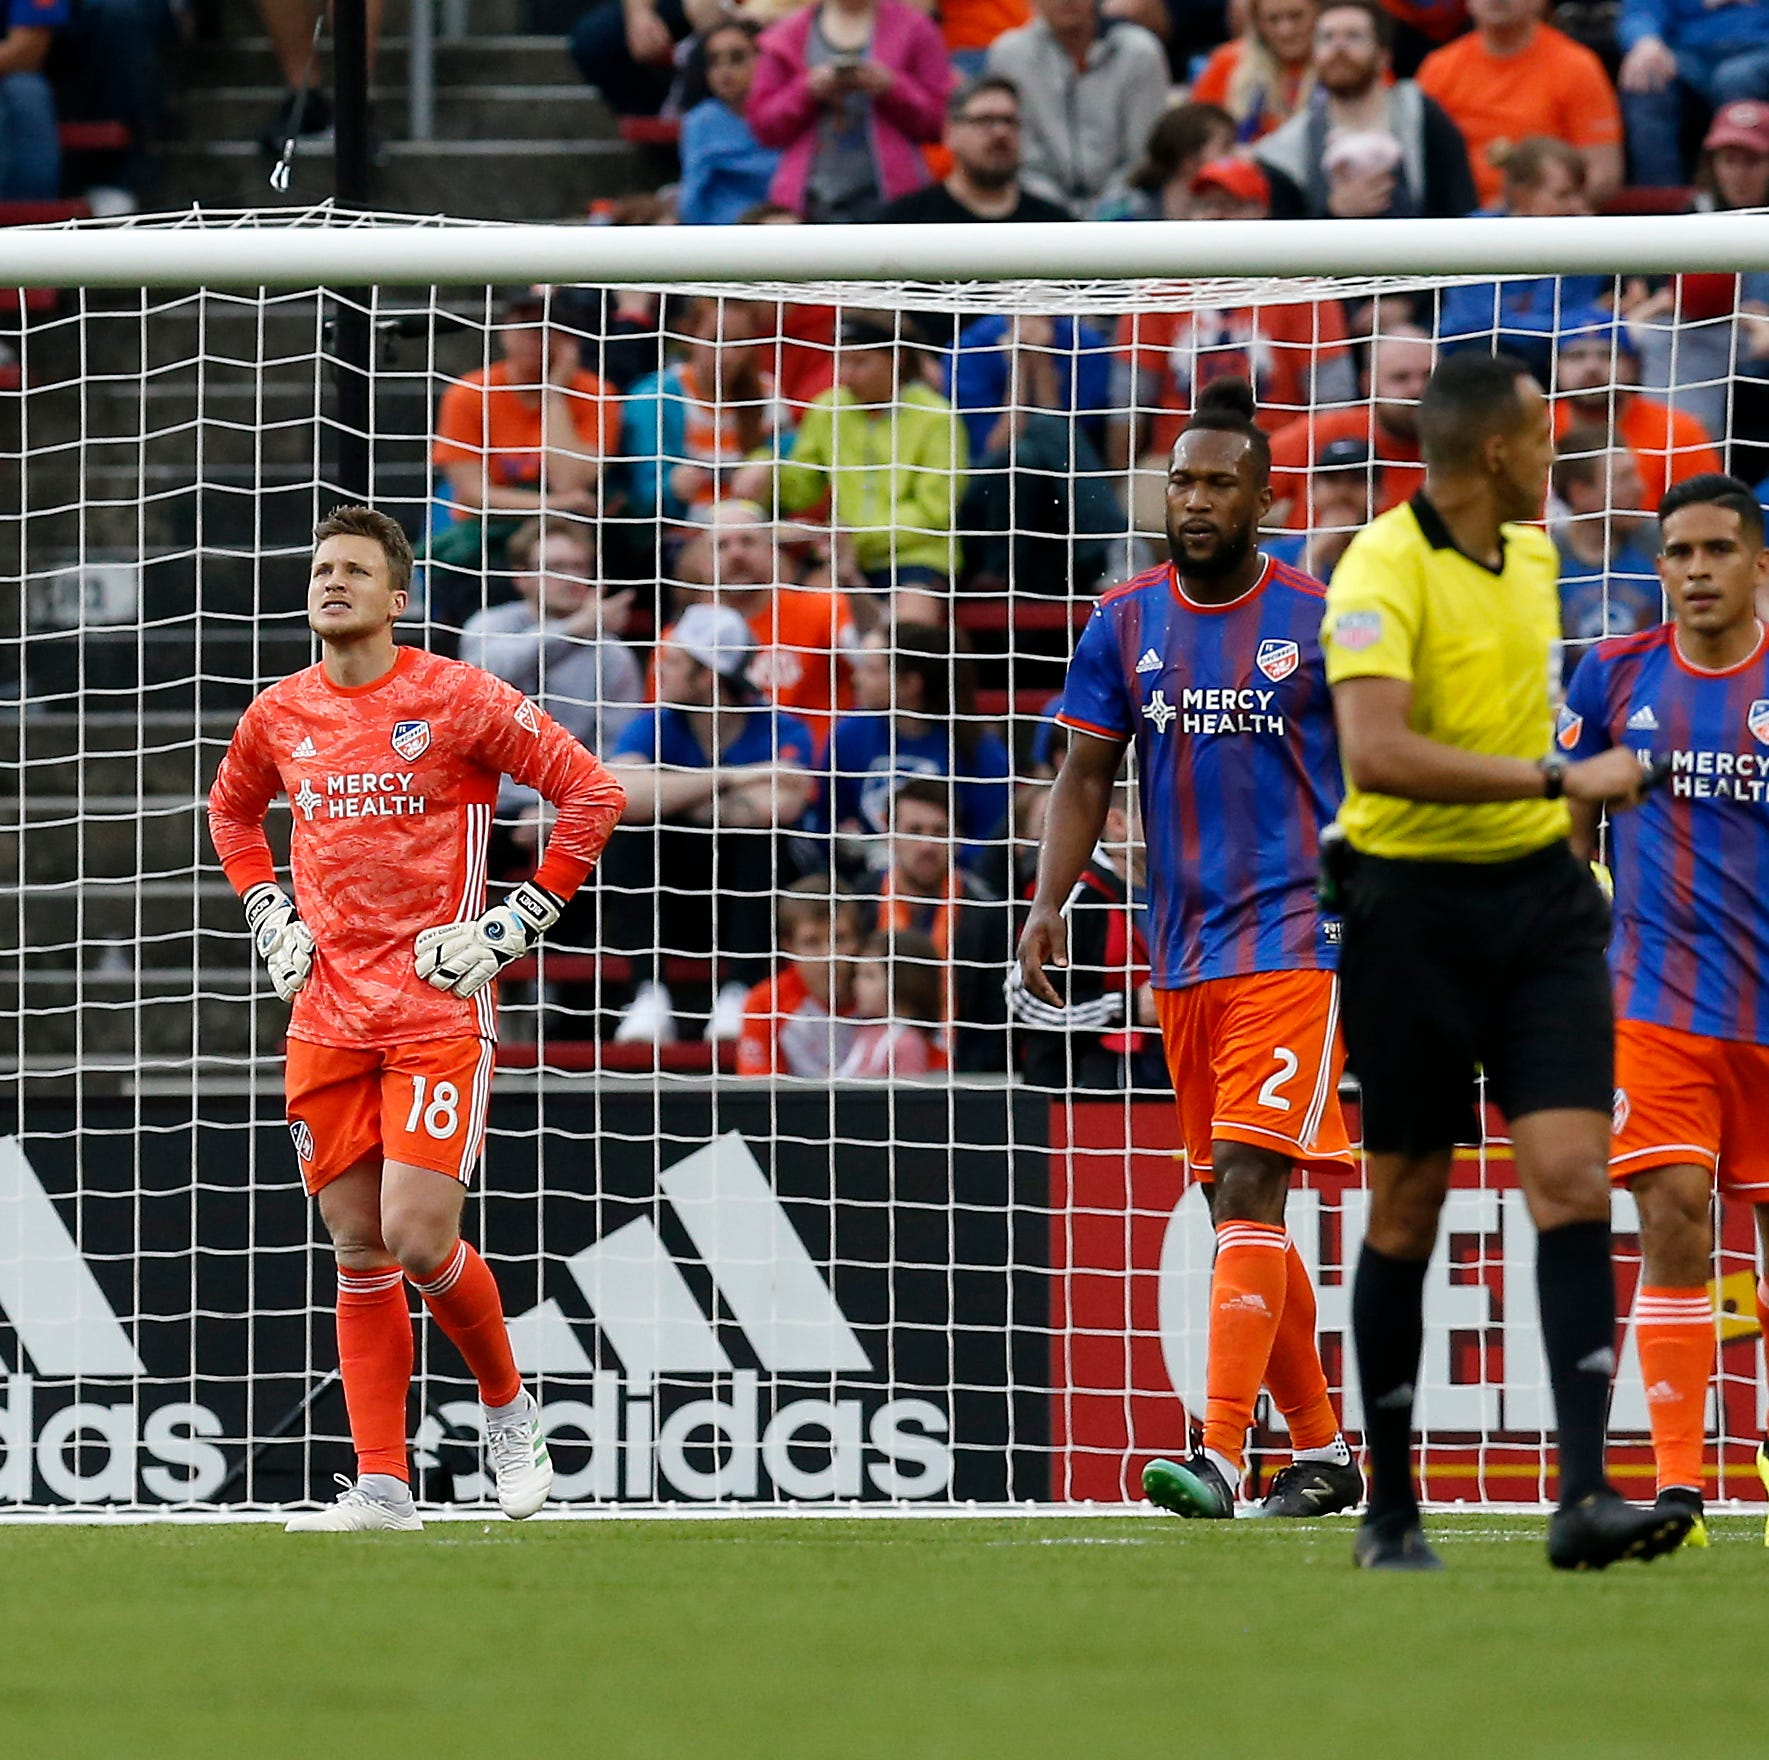 FC Cincinnati vs. Sporting Kansas City: Key miscue, missed chances result in 1-1 MLS draw